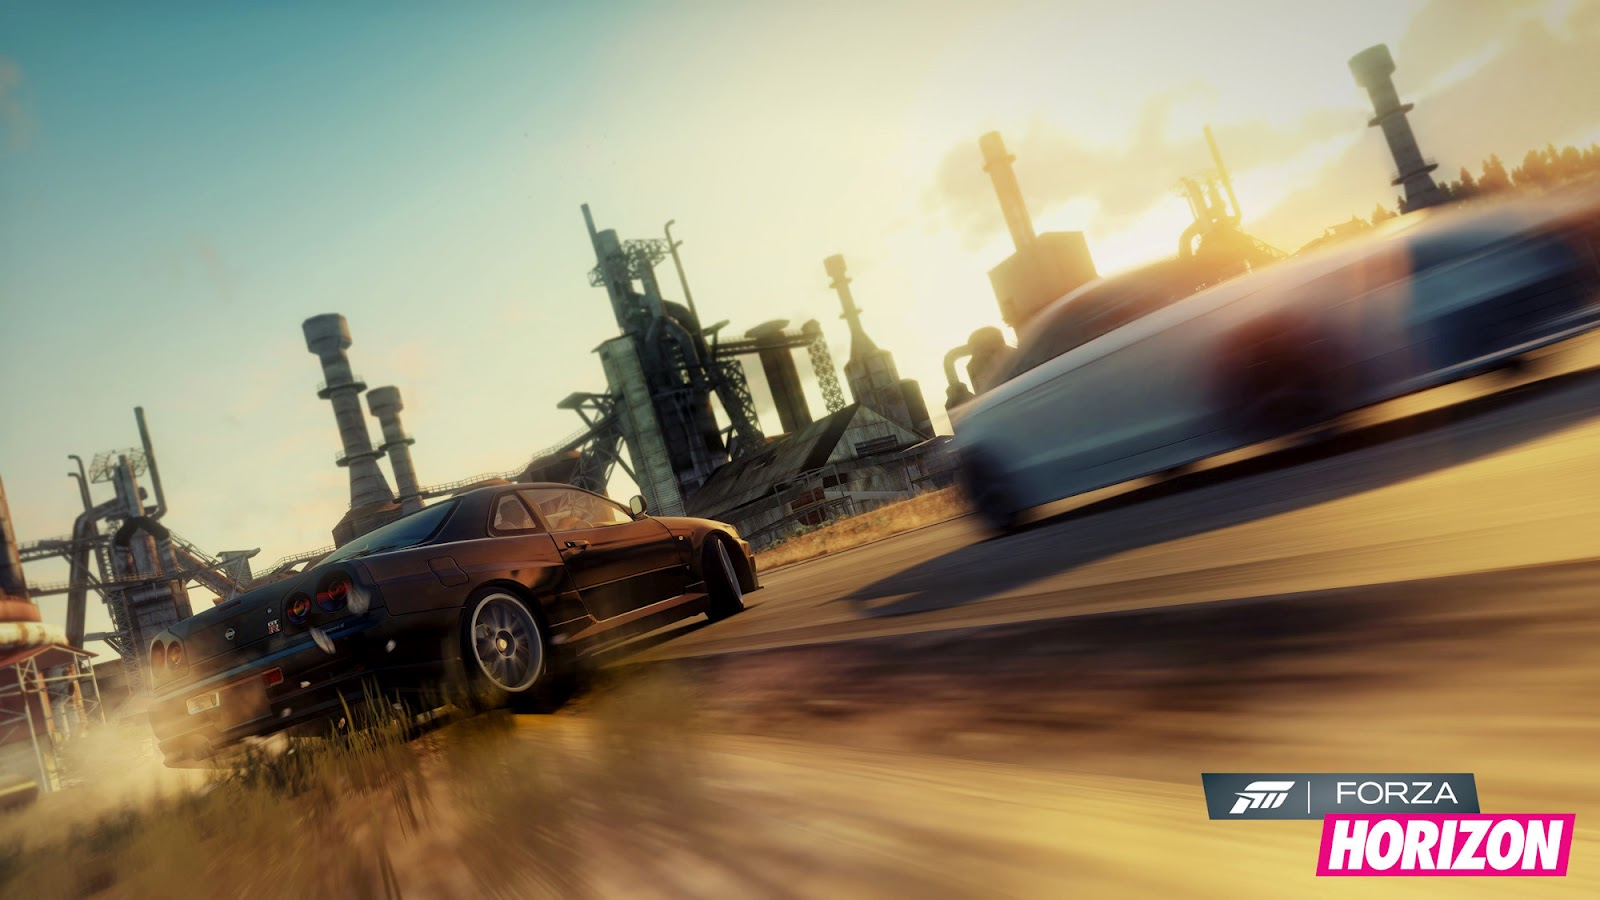 Forza Horizon HD & Widescreen Wallpaper 0.262033093184502